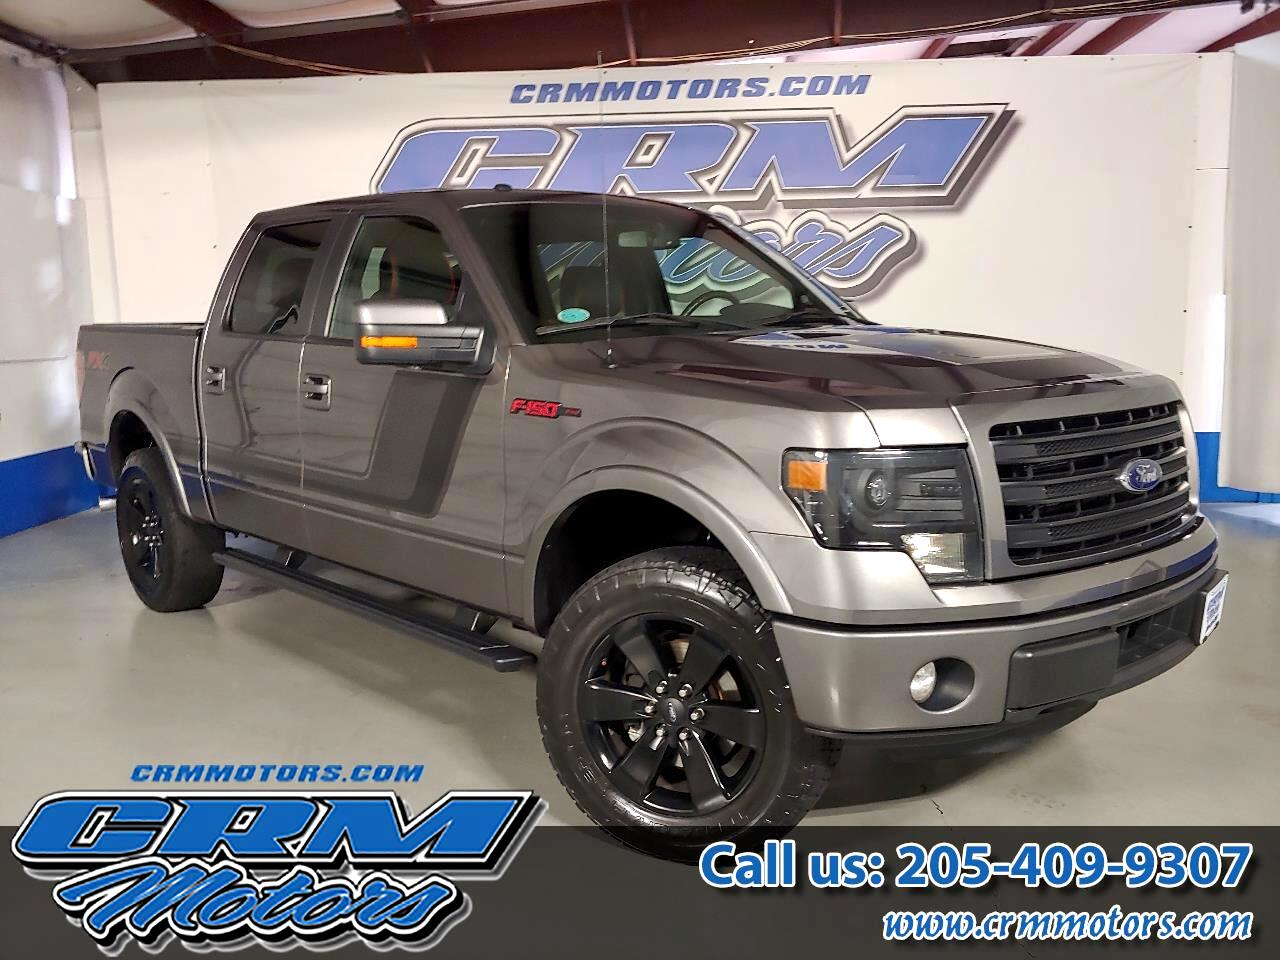 2014 Ford F-150 4WD FX4 SUPERCREW WITH EVERY OPTION!